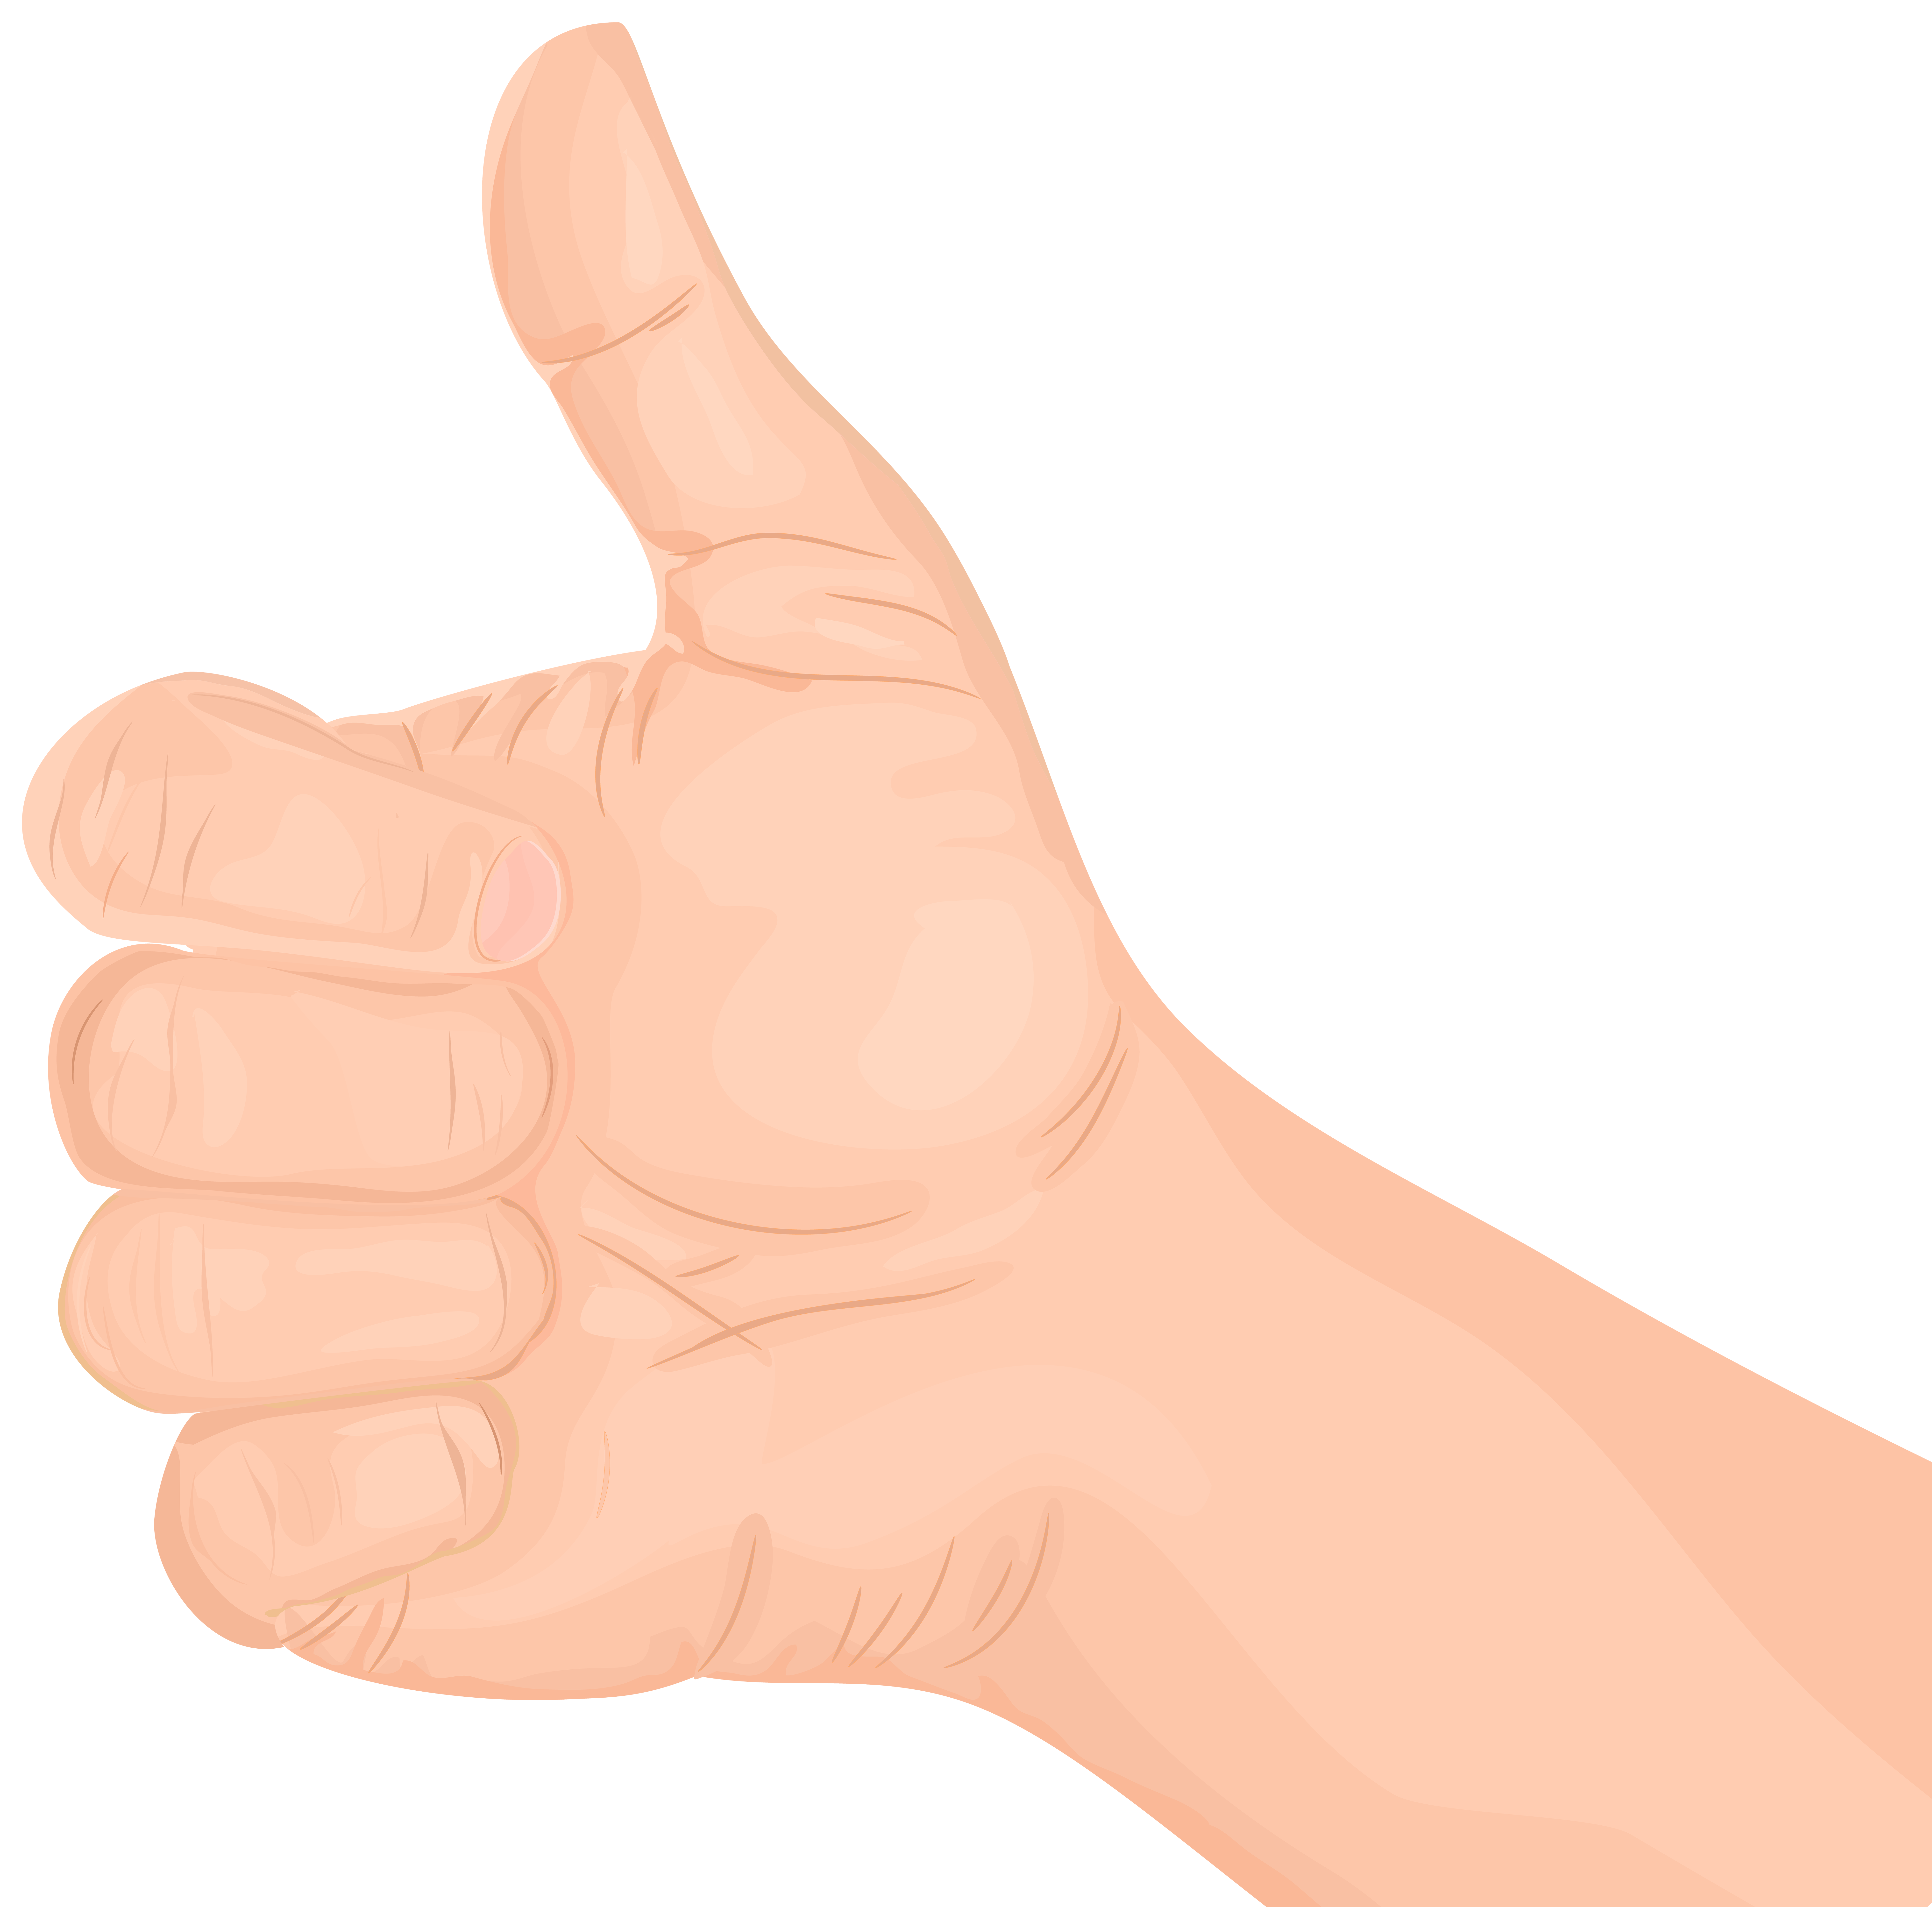 8000x7897 Thumbs Up Hand Gesture Transparent Png Clip Artu200b Gallery